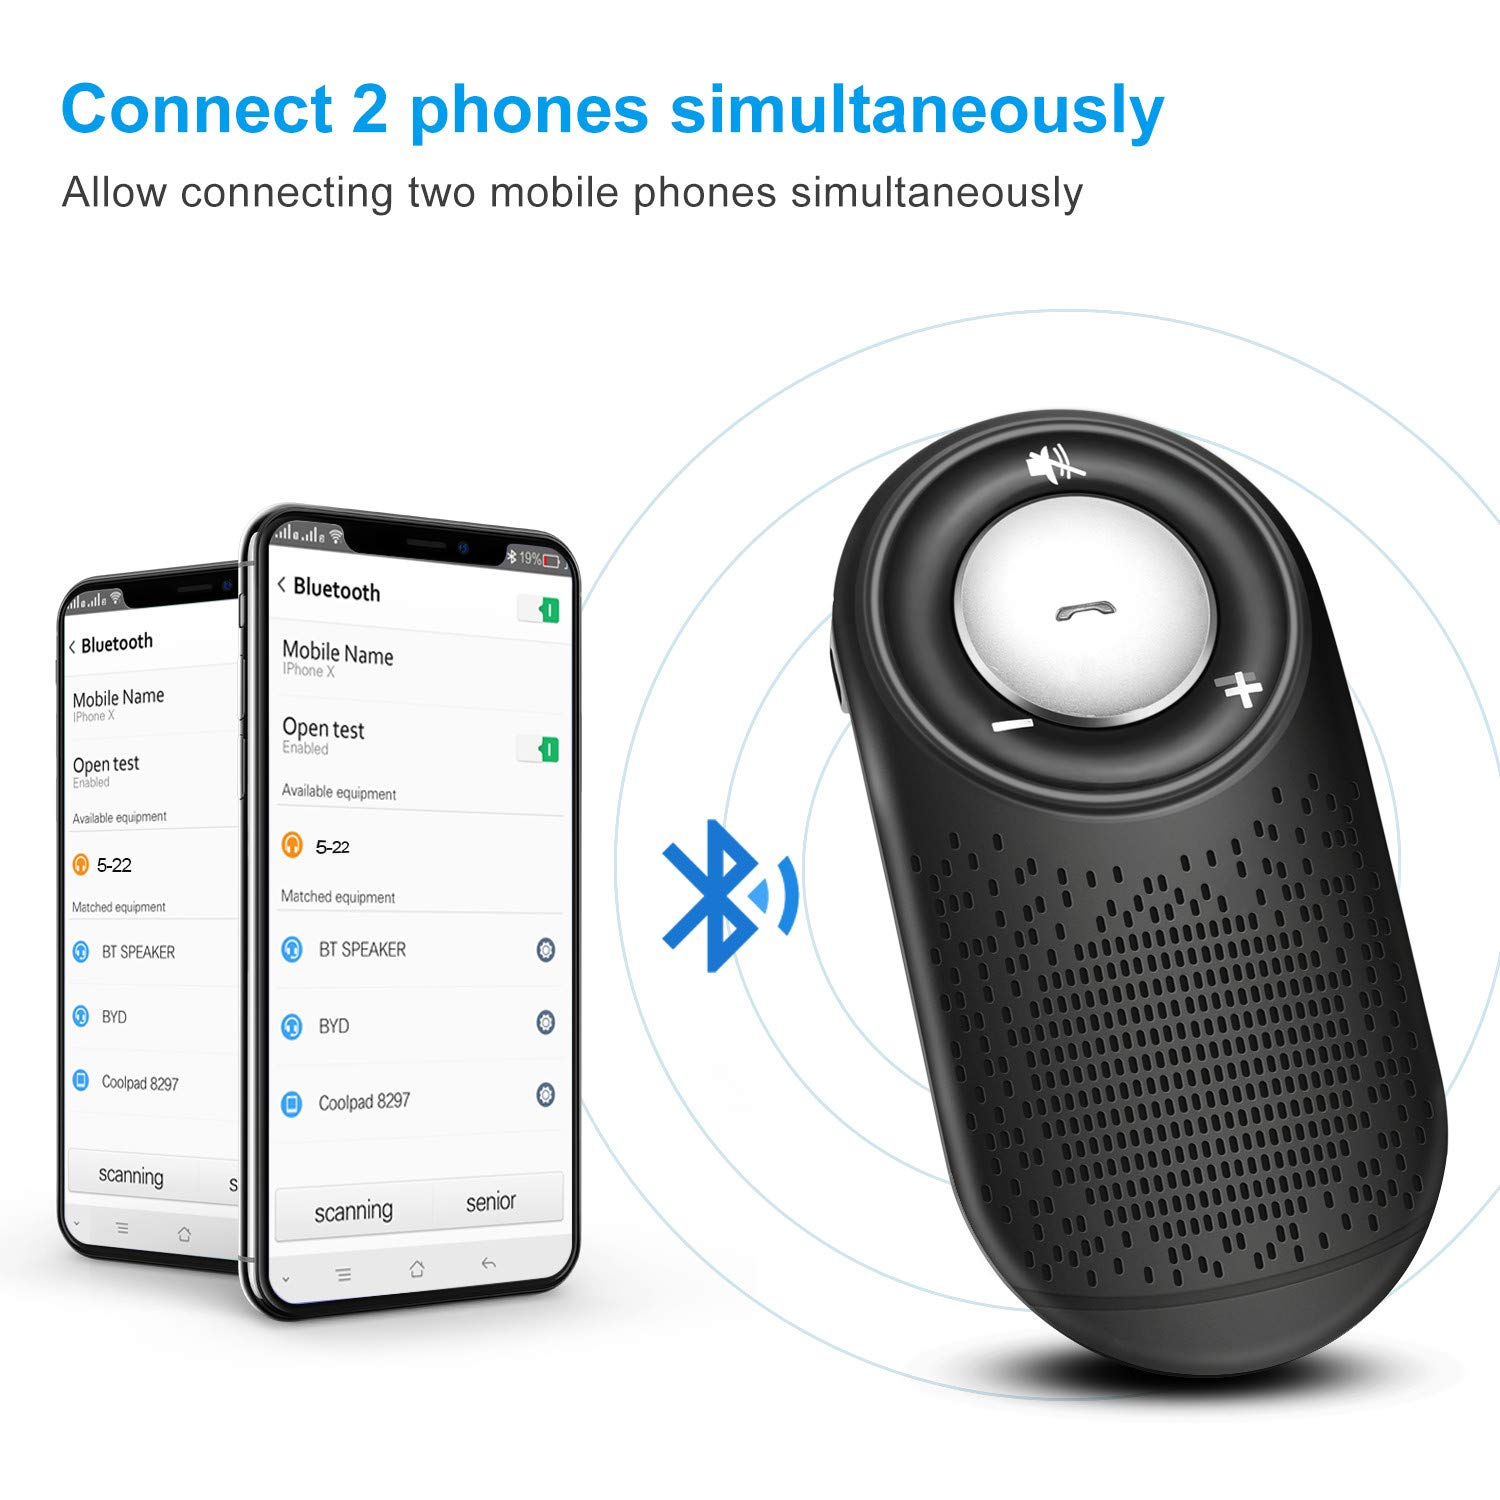 in Car Speakerphone with Auto Power On Off SZBYAO Wireless DSP Bluetooth Visor Handsfree Car Kit for iPhone Samsung HTC Huawei Xperia French with Mute,Spanish,English Siri Google Voice Command